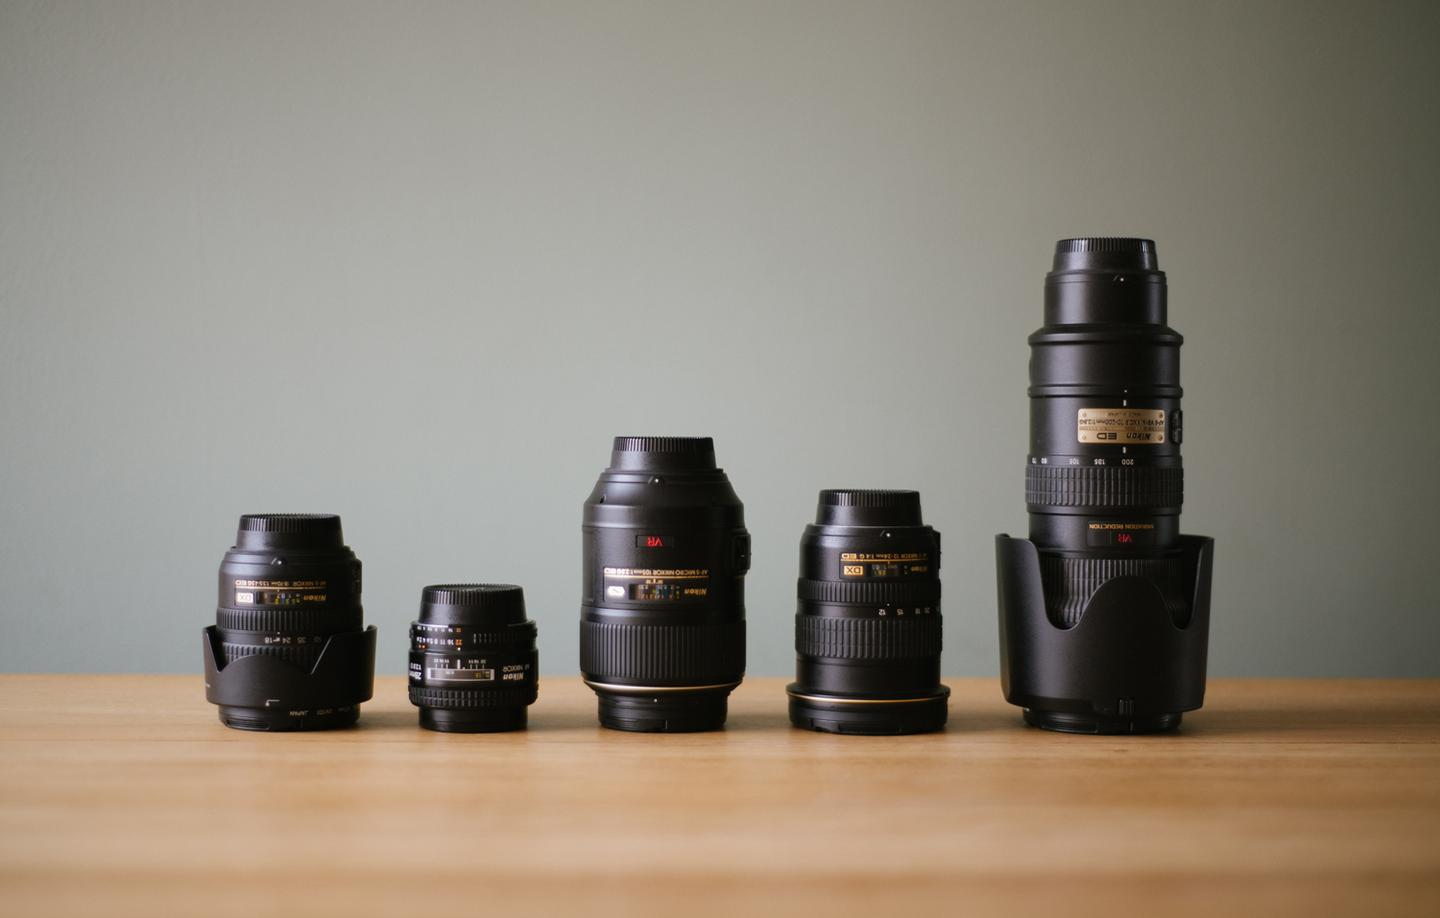 Choosing which lens to buy for your DSLR or interchangeable lens camera can be a daunting and confusing experience